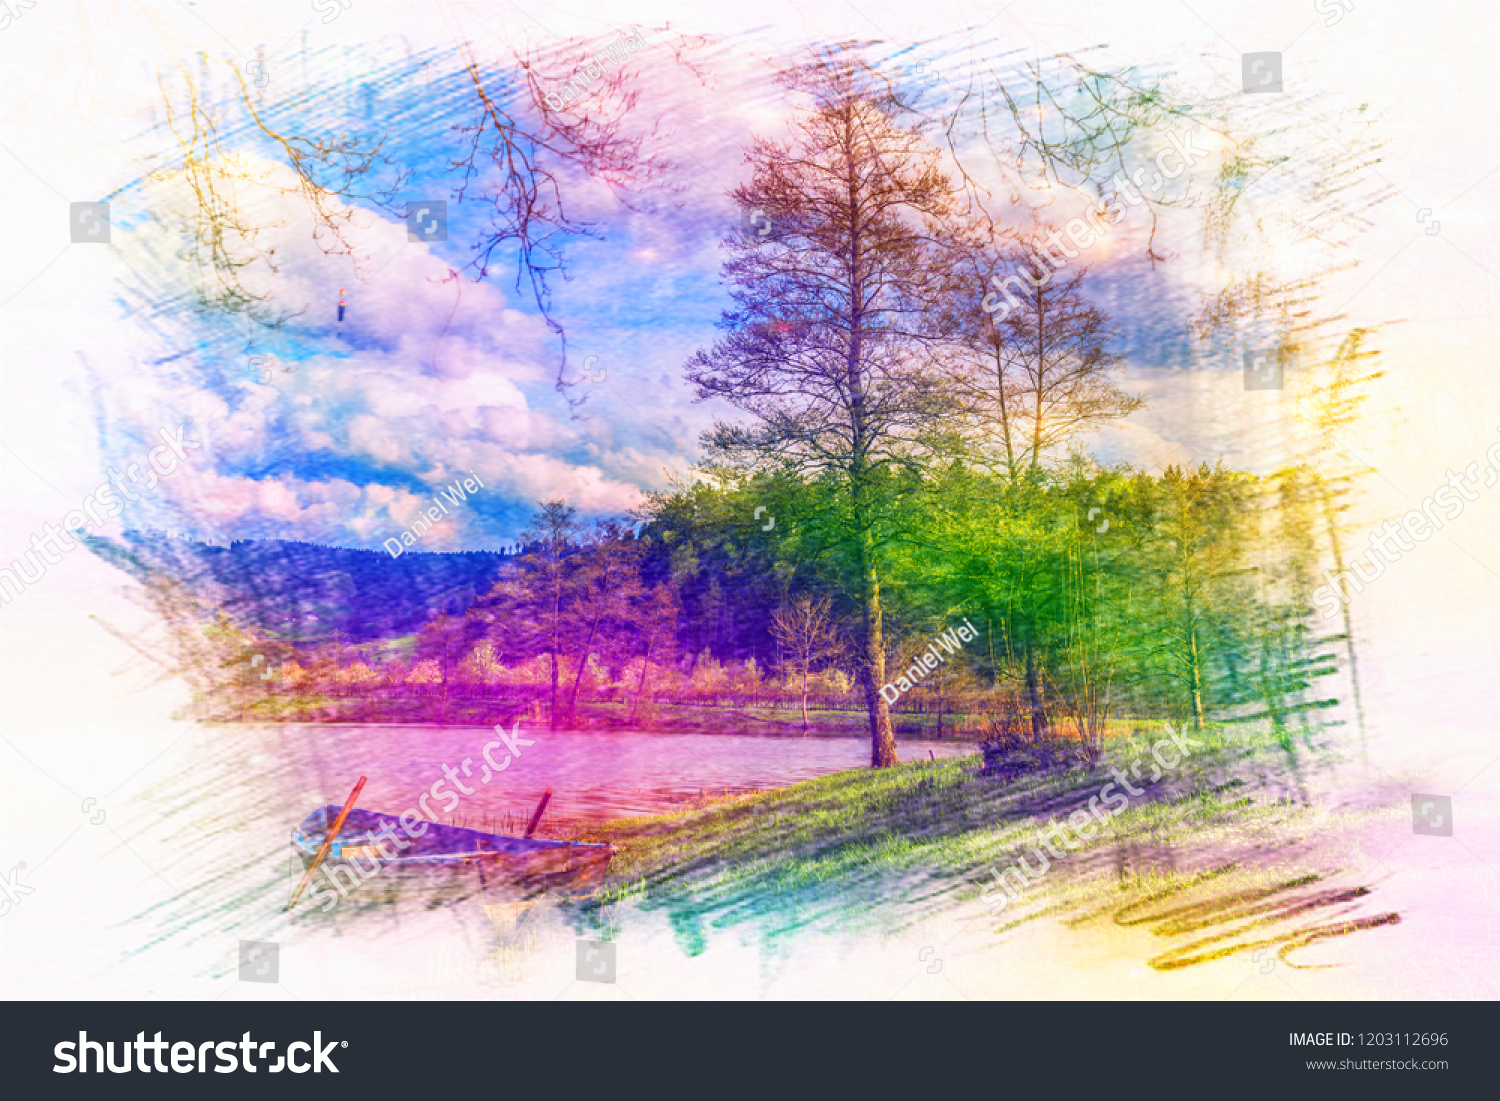 Beautiful Coloured Sketch Drawing Nature The Arts Stock Image 1203112696